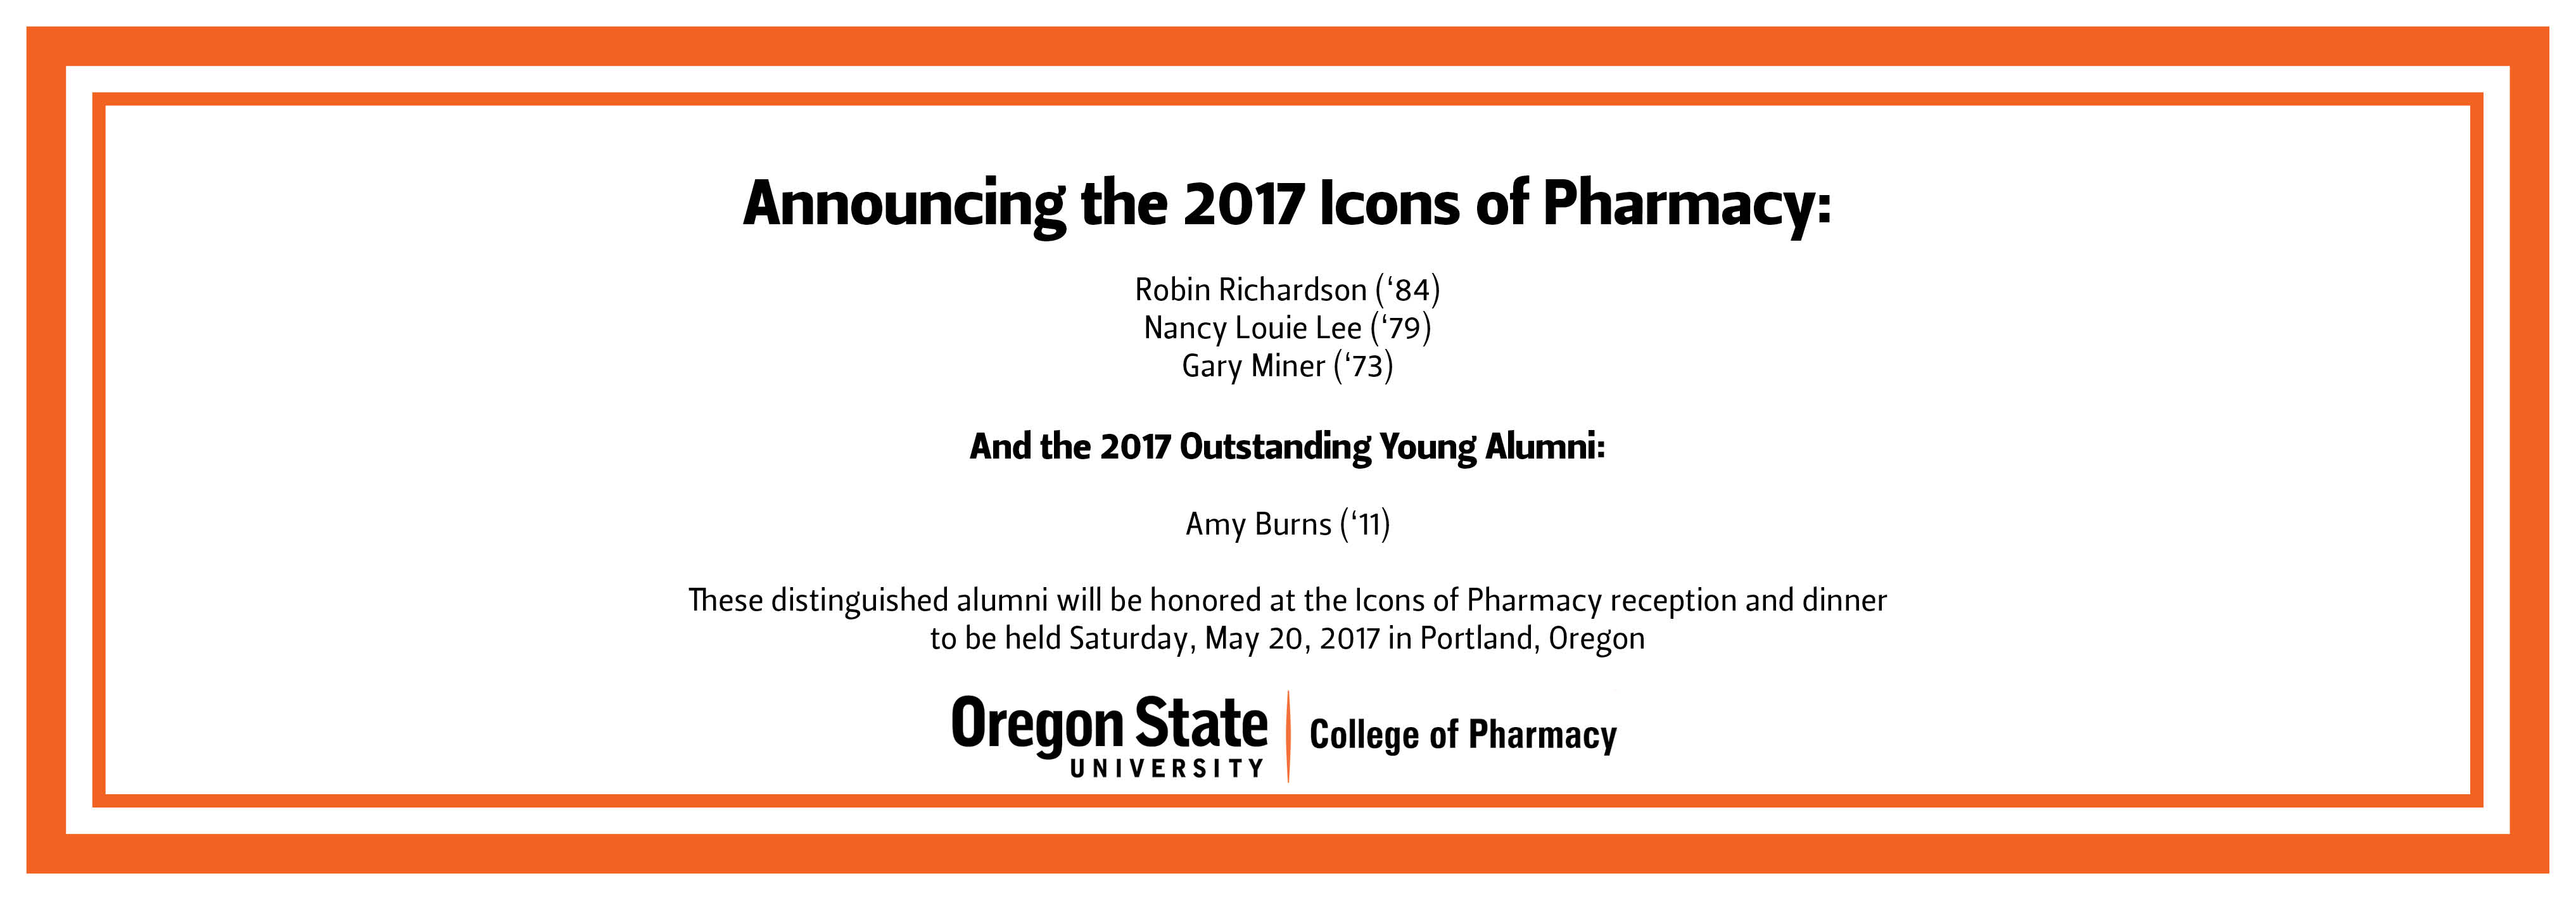 2017 Icons of Pharmacy Announced